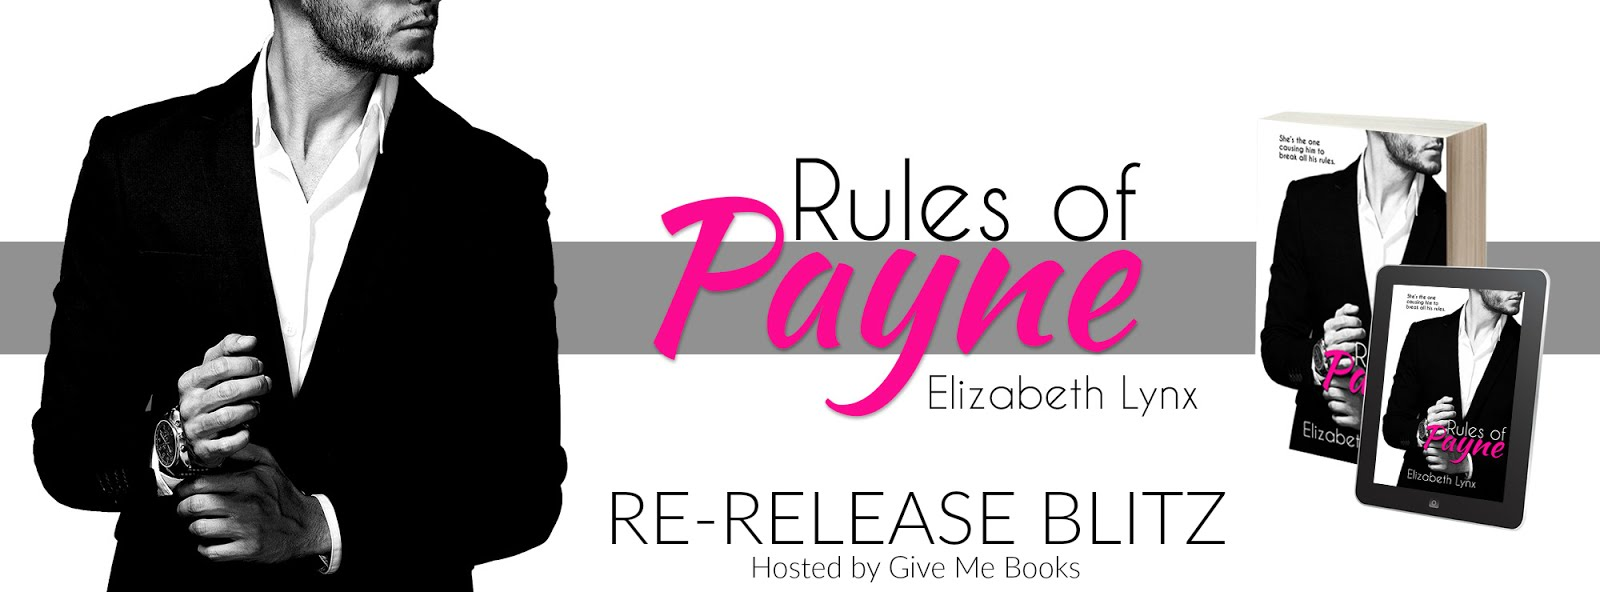 Rules of Payne Re-Release Blitz